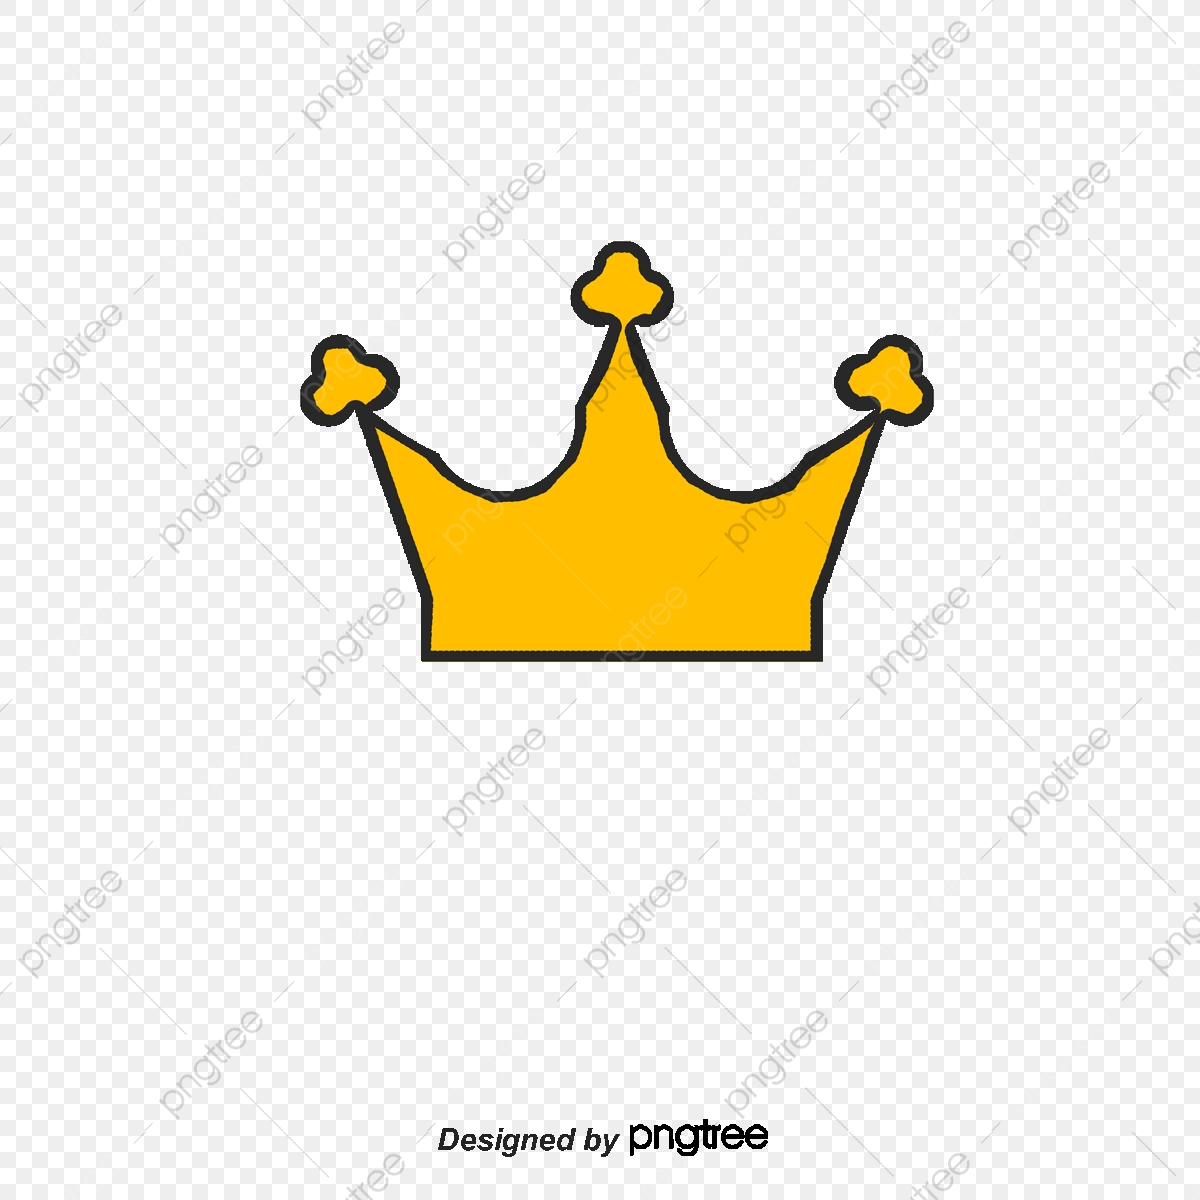 Cartoon Crown, Crown Clipart, Vector Png, An Crown PNG and Vector.